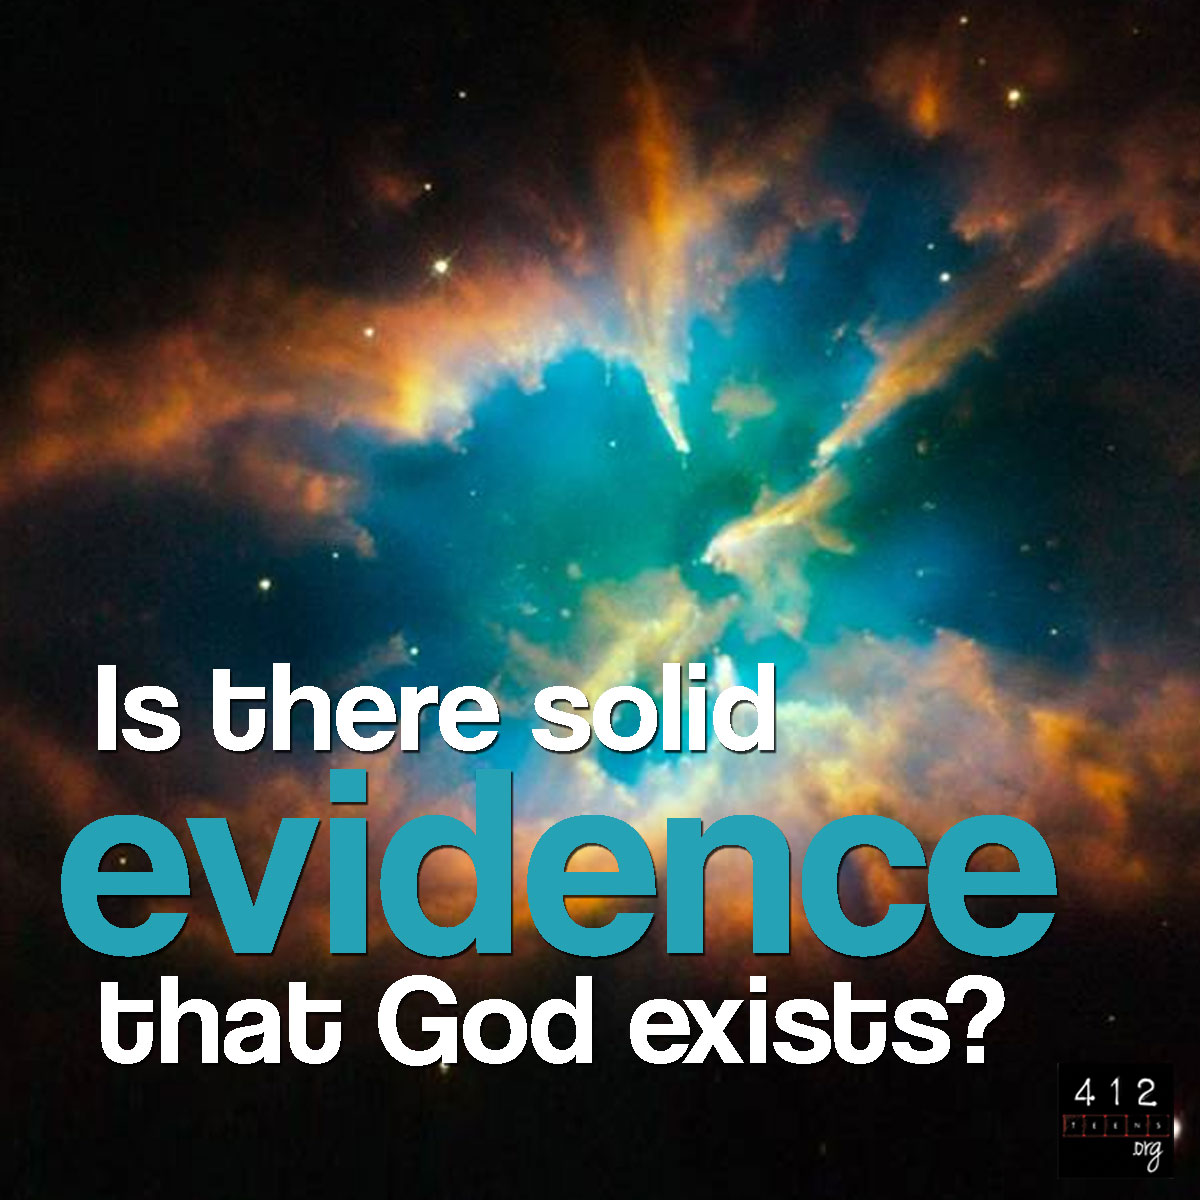 does god exit If there is a small chance that god does exist then you should really try to find out more about him and whether he exists as your whole eternal future will depend on what this god thinks.